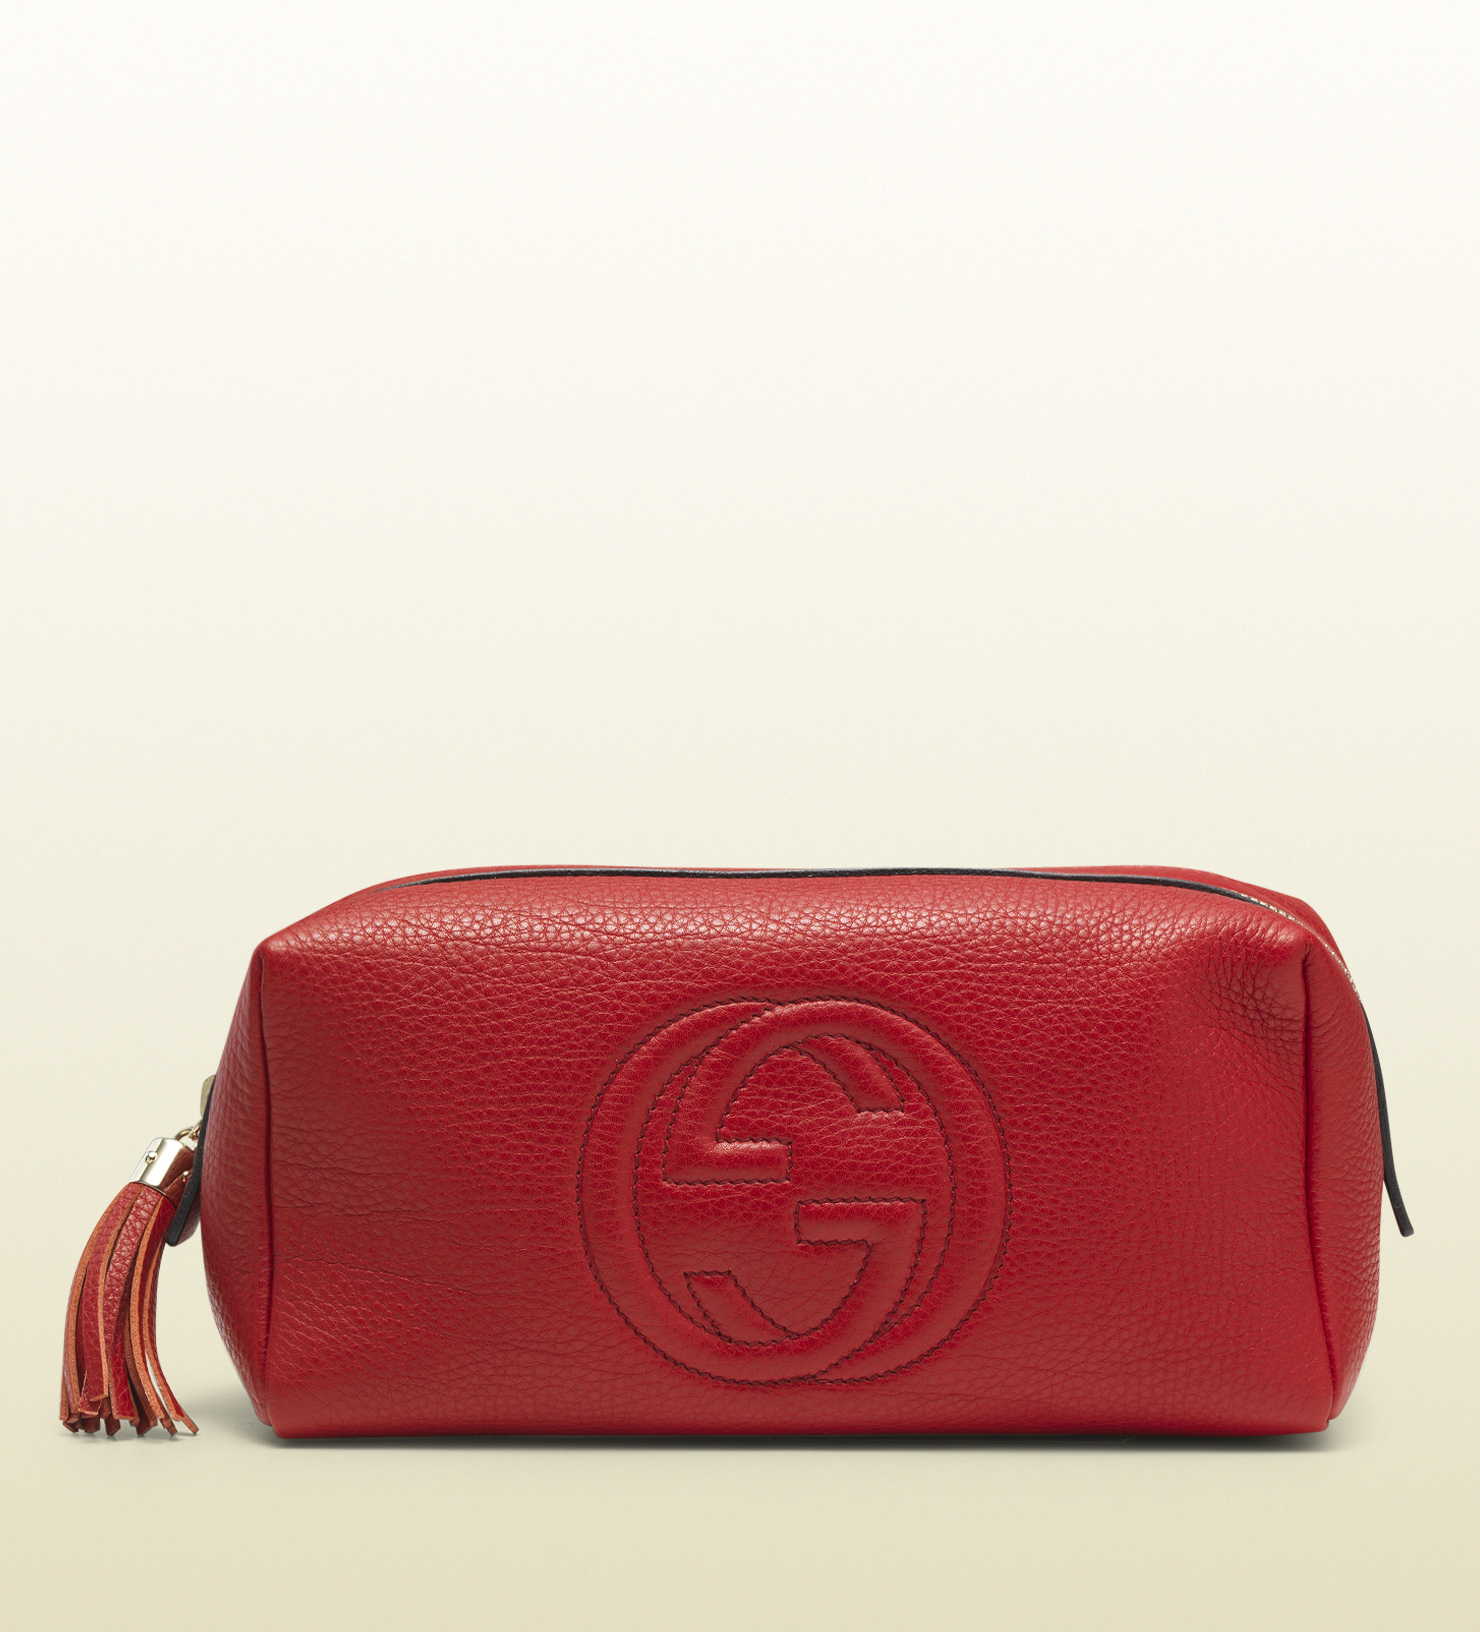 Gucci - soho large red leather cosmetic bag  308637A7M0G6523